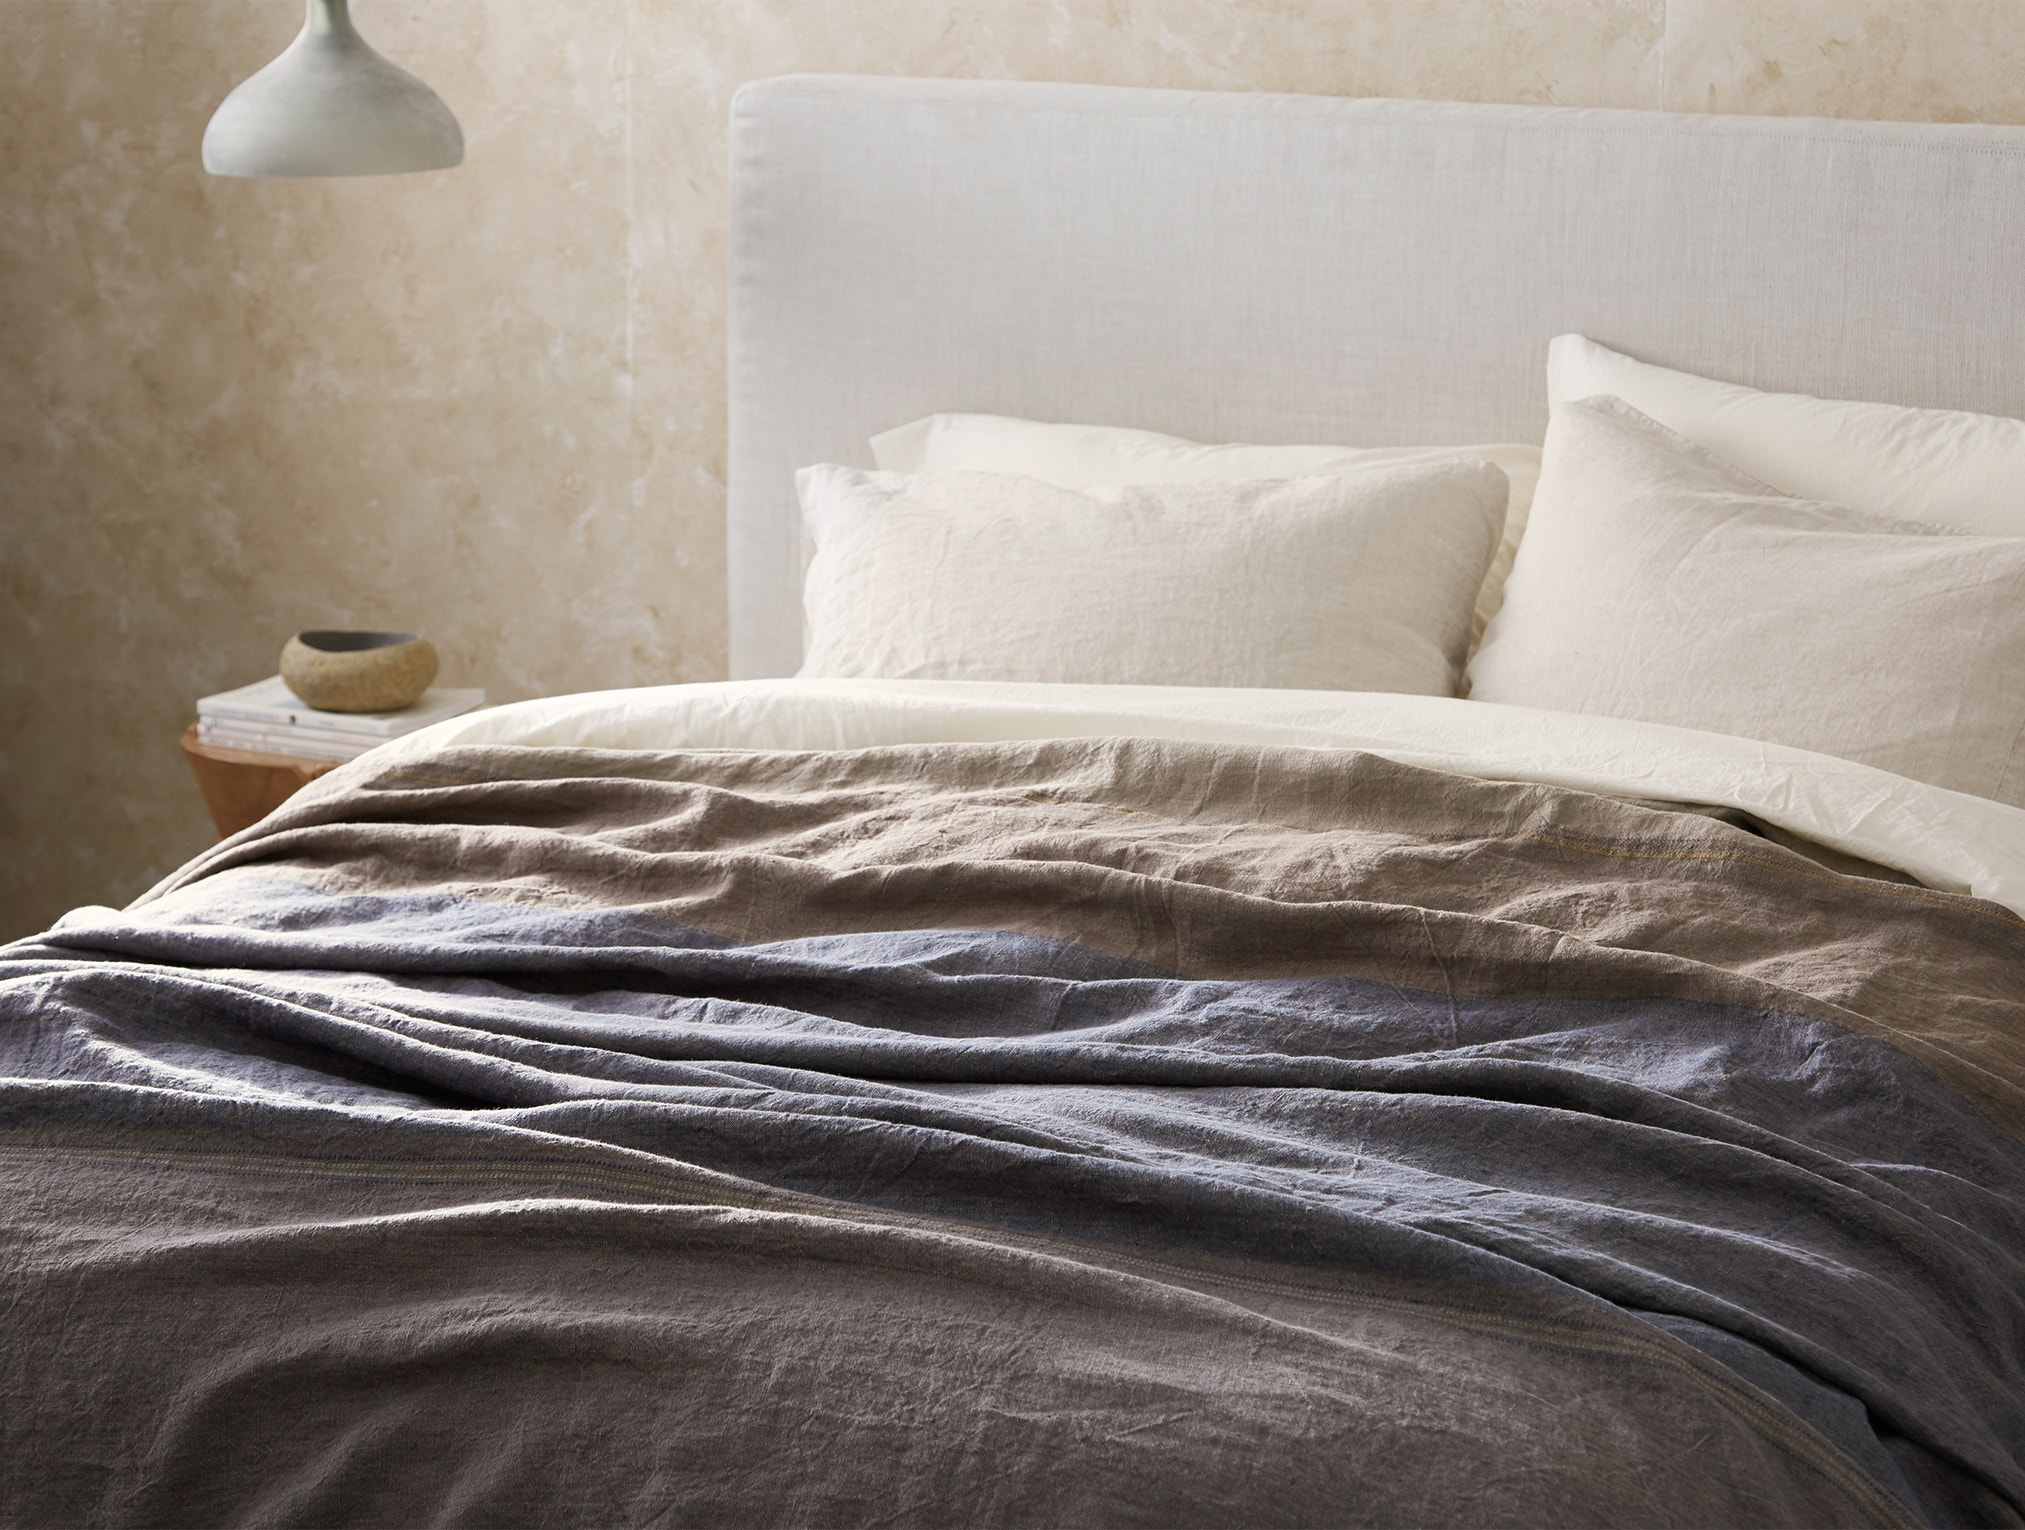 Mojave Organic Linen Blanket styled with Organic linen sheets